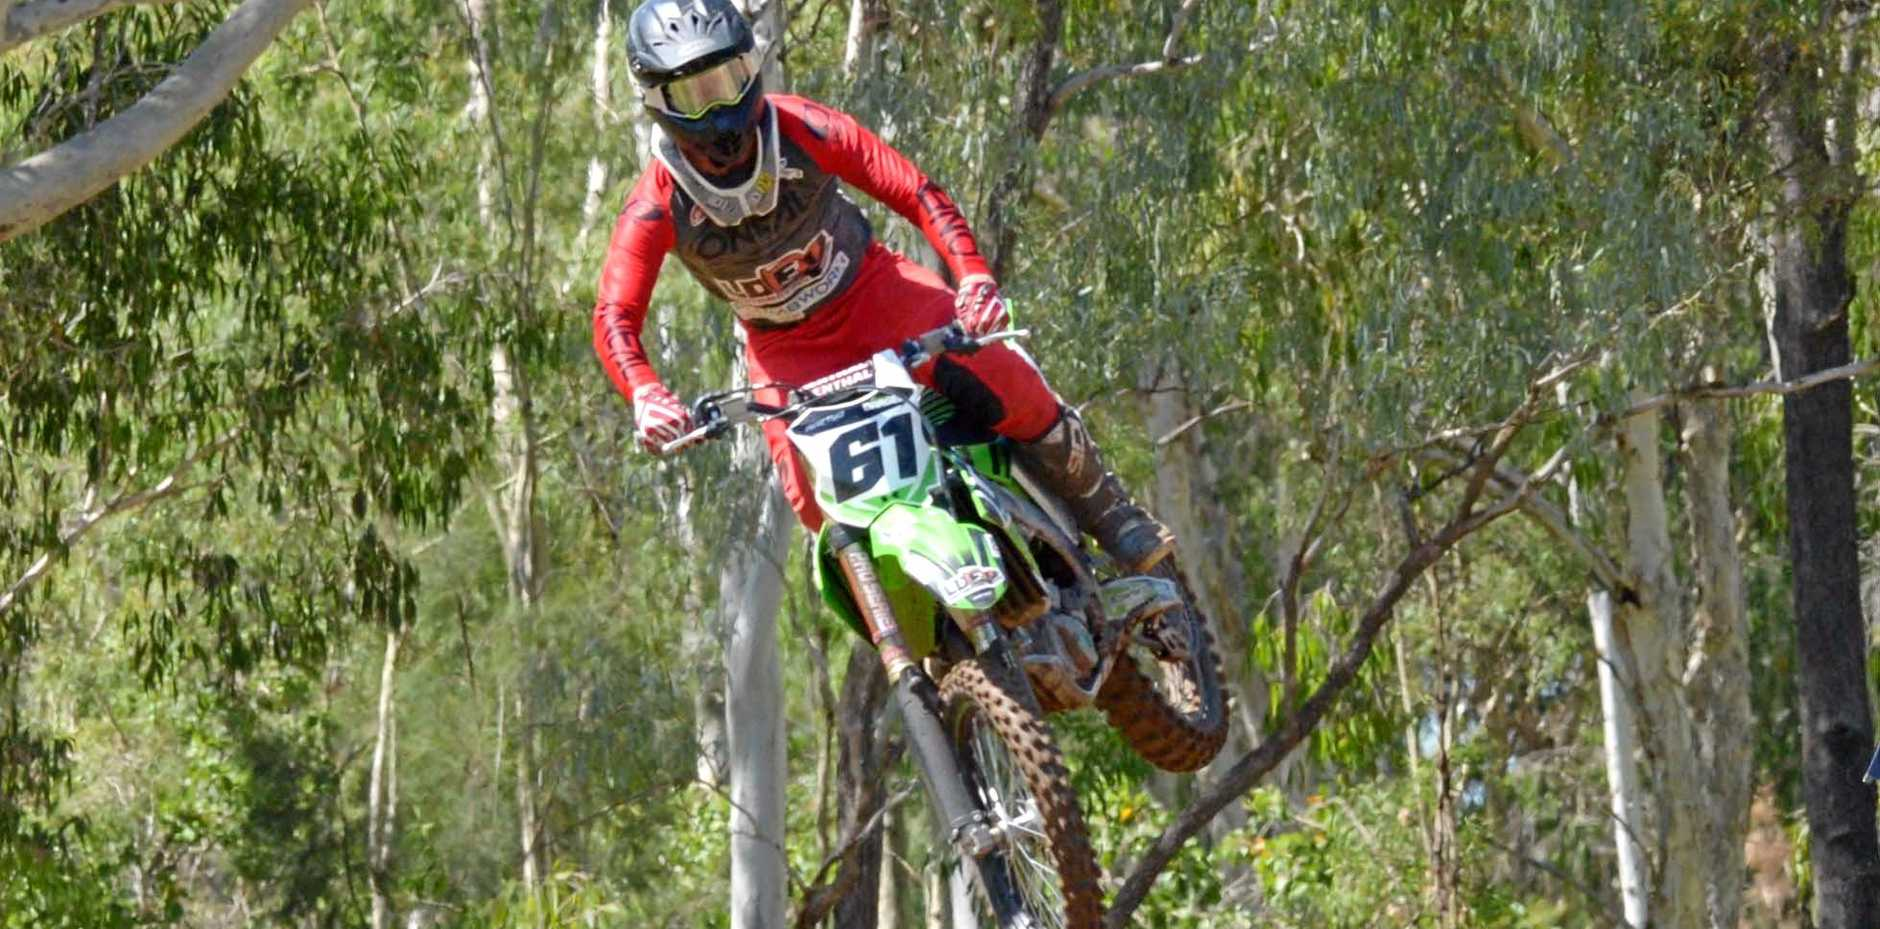 Beau Dargel is expected to impress at this weekend's CQ Titles Round 2.